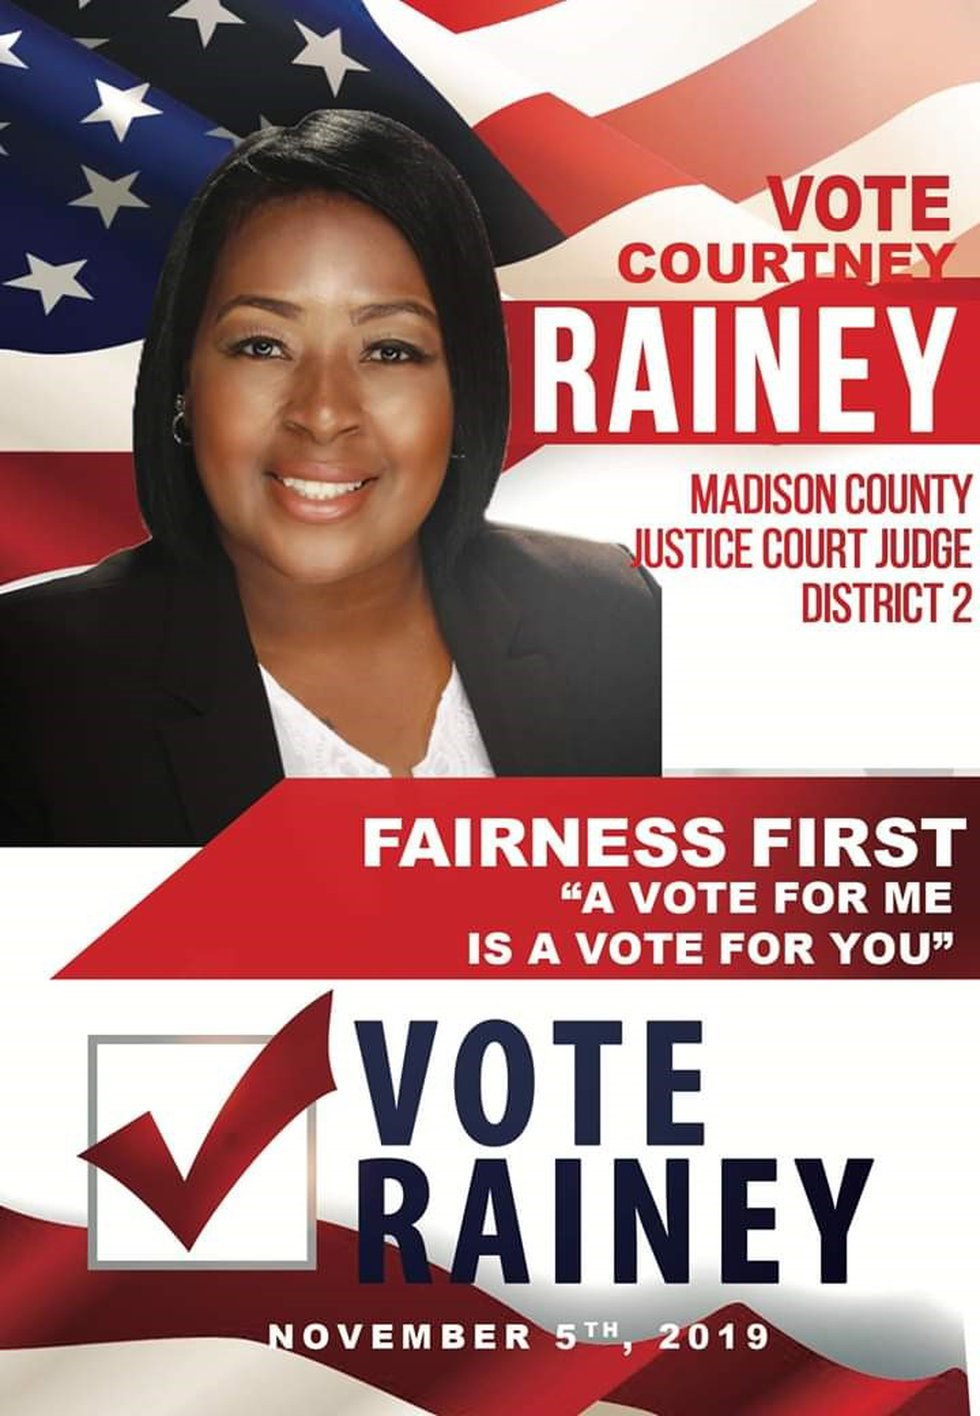 Courtney Rainey faces multiple counts of voter fraud. (Source: Facebook)